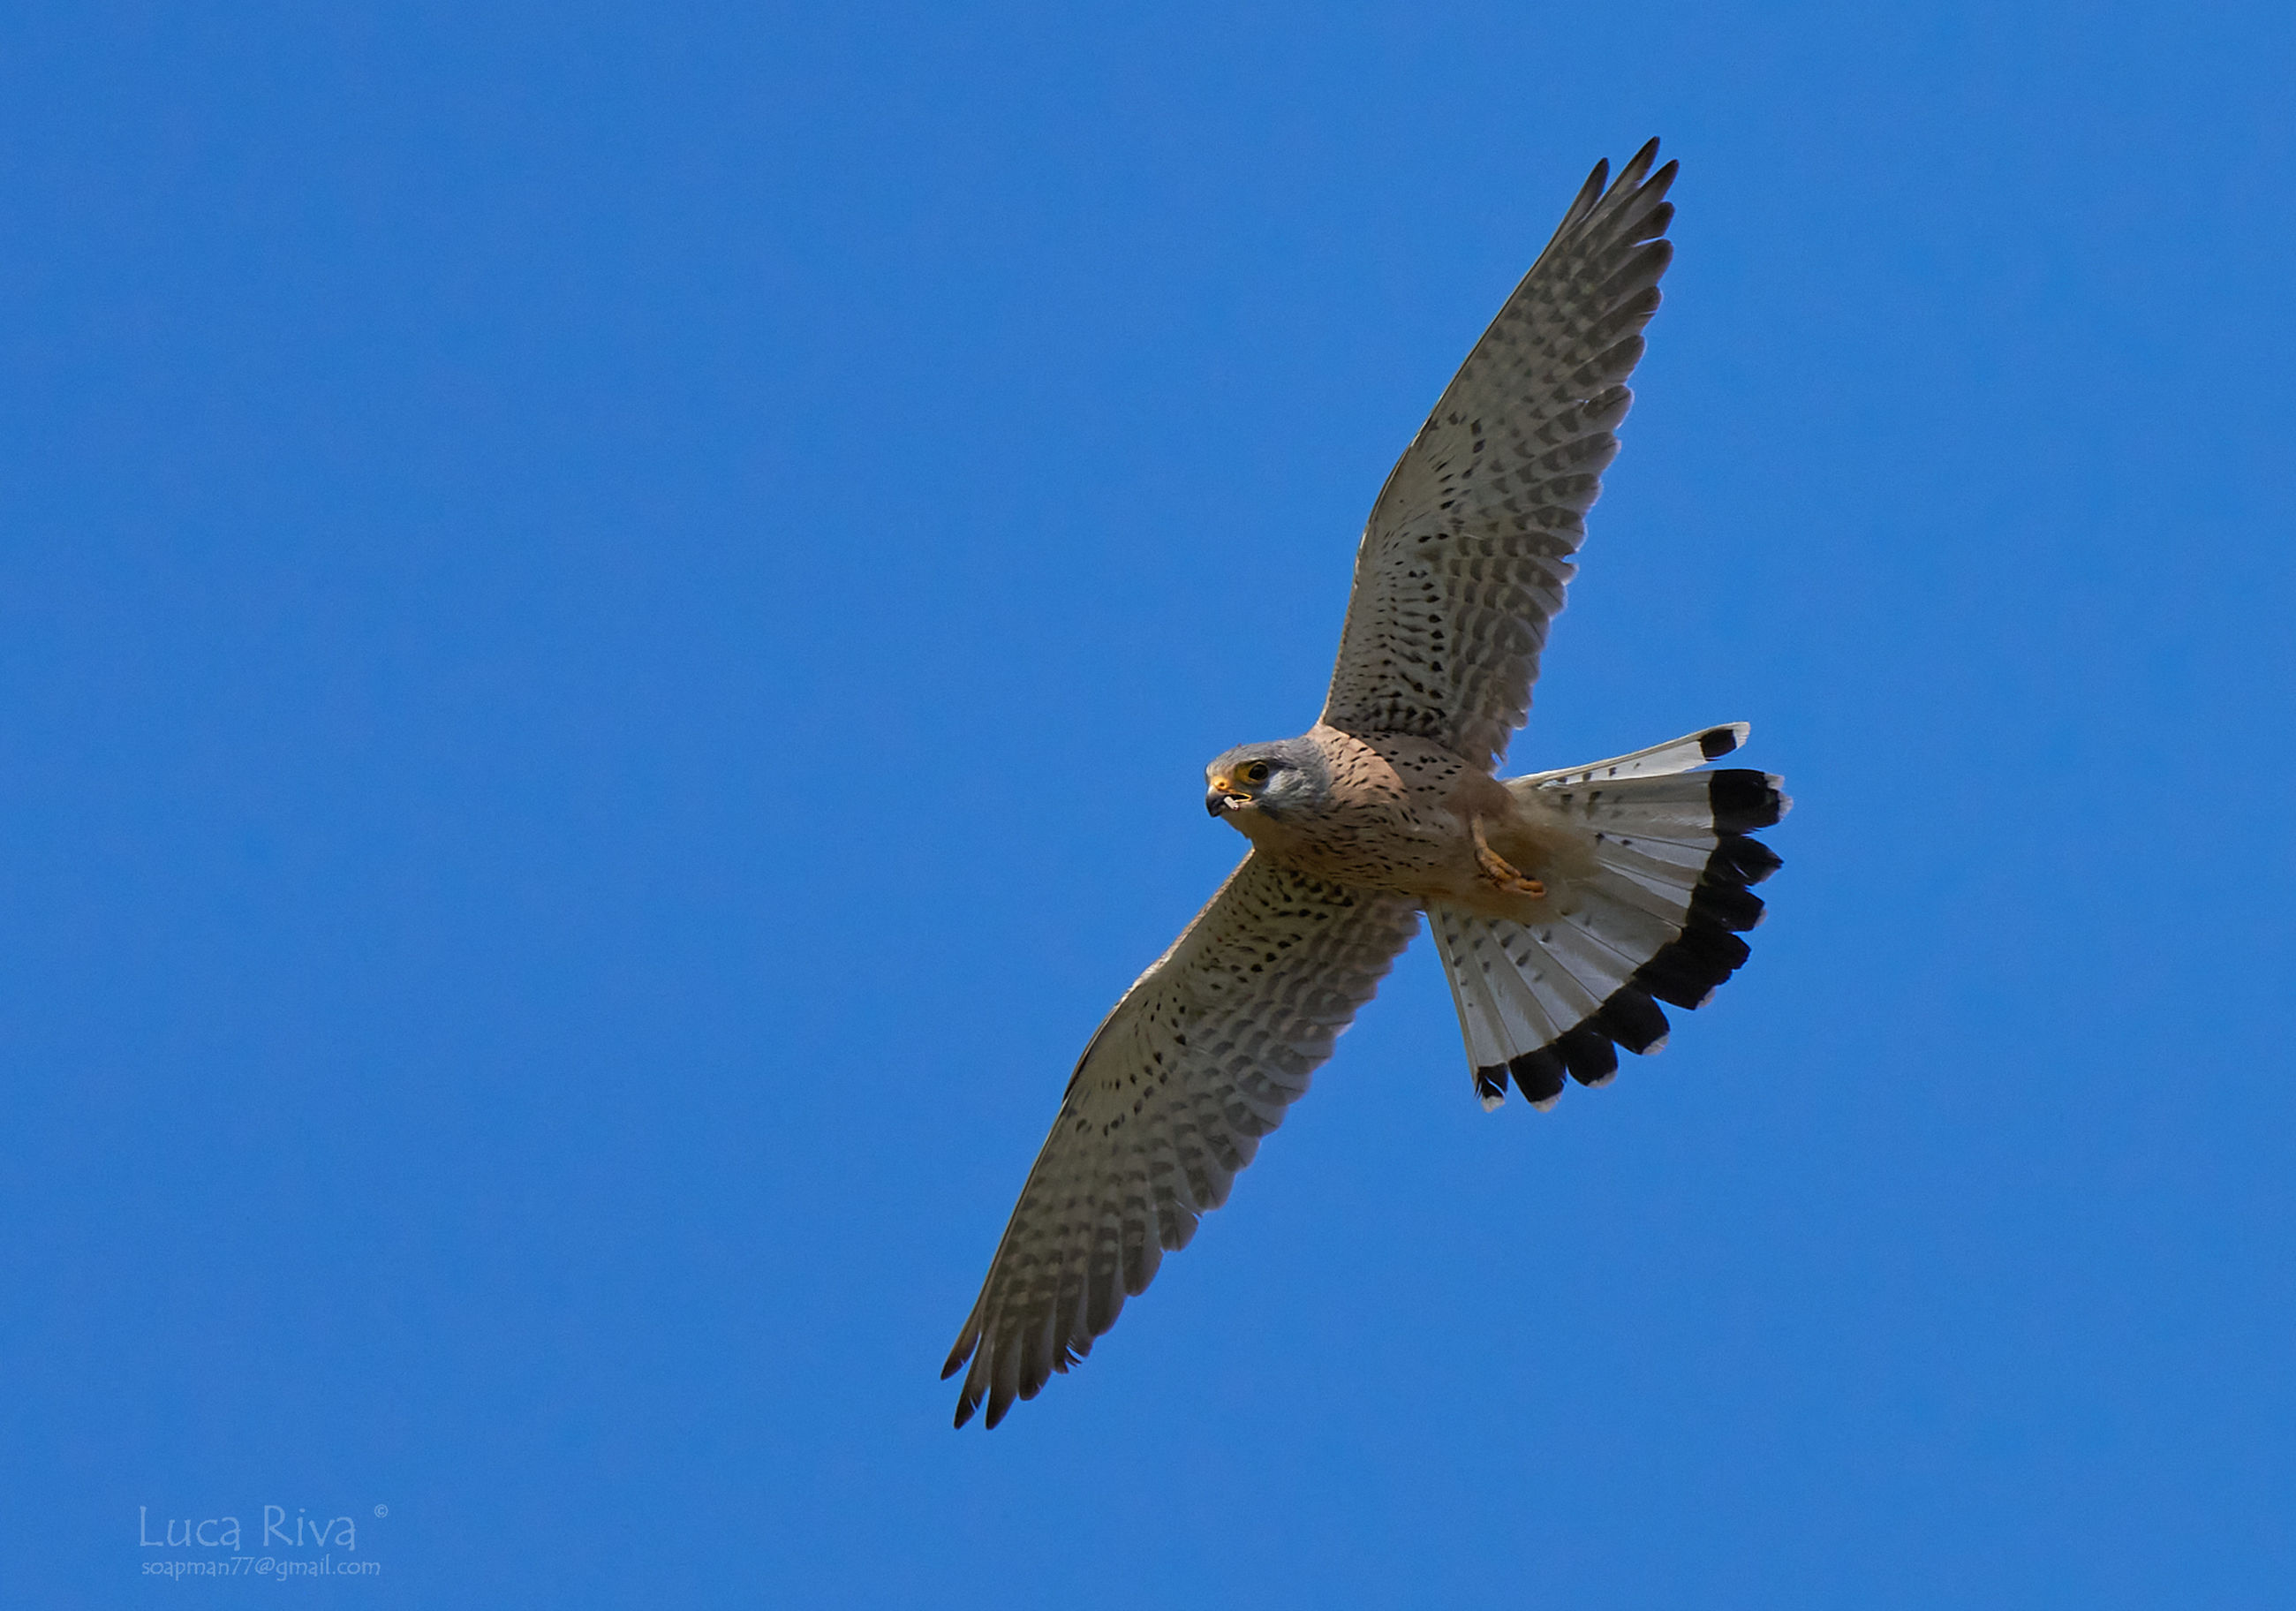 bird, flying, animal themes, animal, animal wildlife, wildlife, one animal, spread wings, bird of prey, blue, sky, falcon, clear sky, animal body part, nature, no people, mid-air, wing, eagle, buzzard, hawk, low angle view, animal wing, day, motion, outdoors, beak, sunny, beauty in nature, copy space, falcon - bird